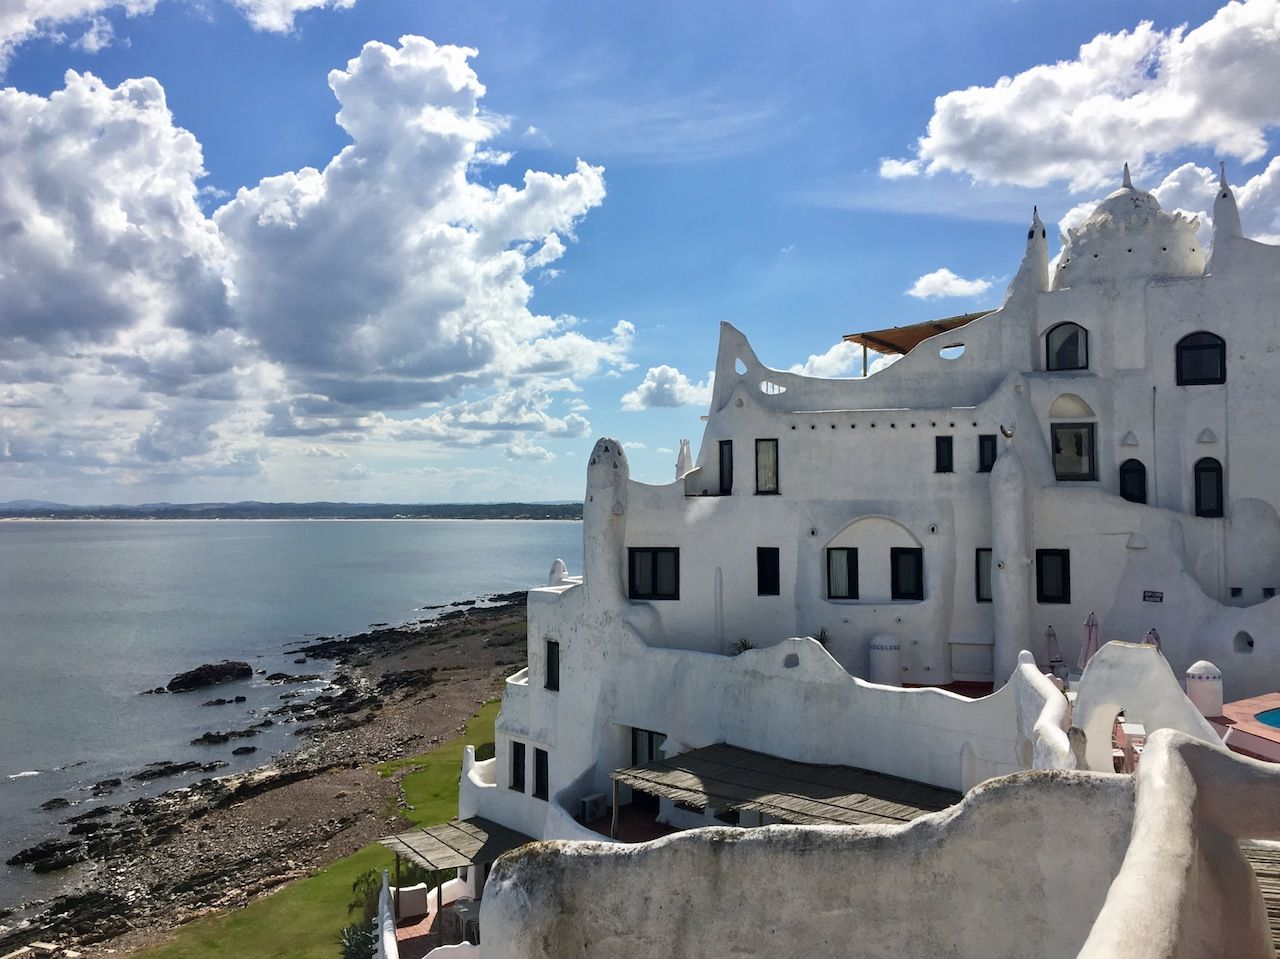 Unusual white casa pueblo building in Punta Ballena, Uruguay